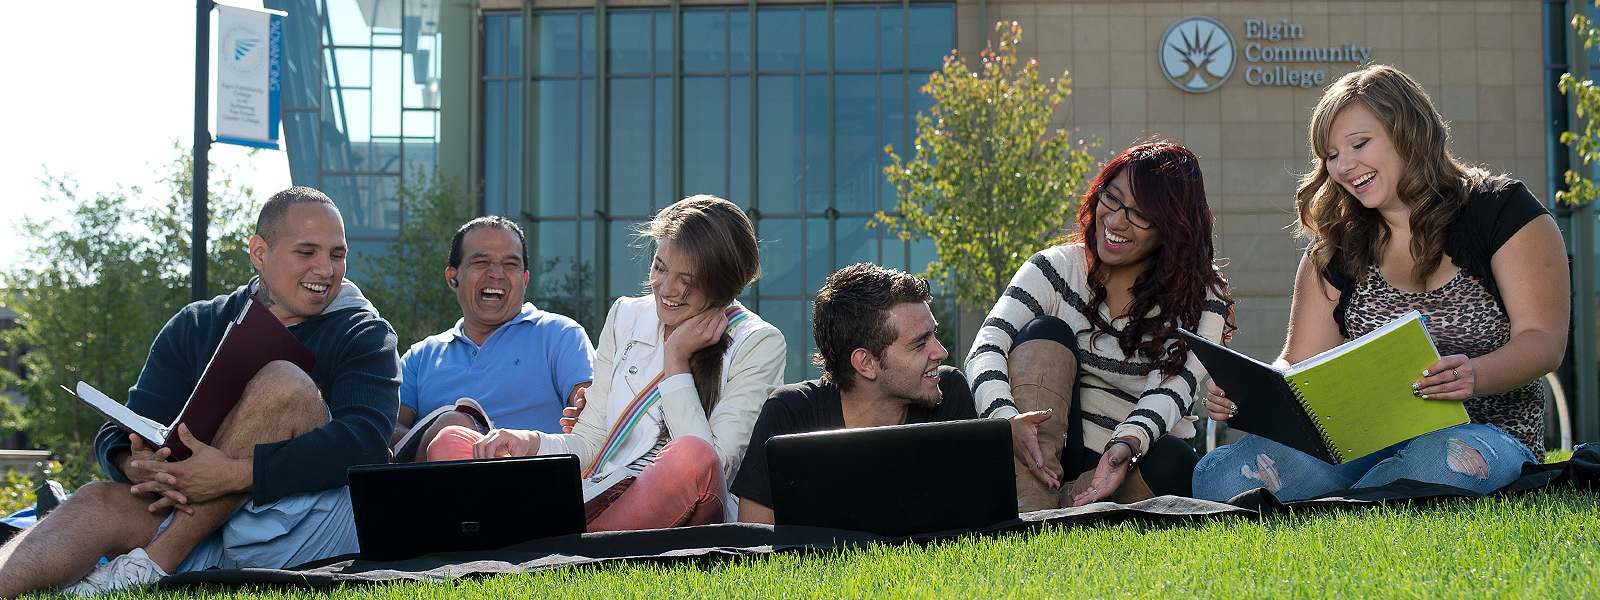 Students that are enjoying sitting on lawn in front of Building C.